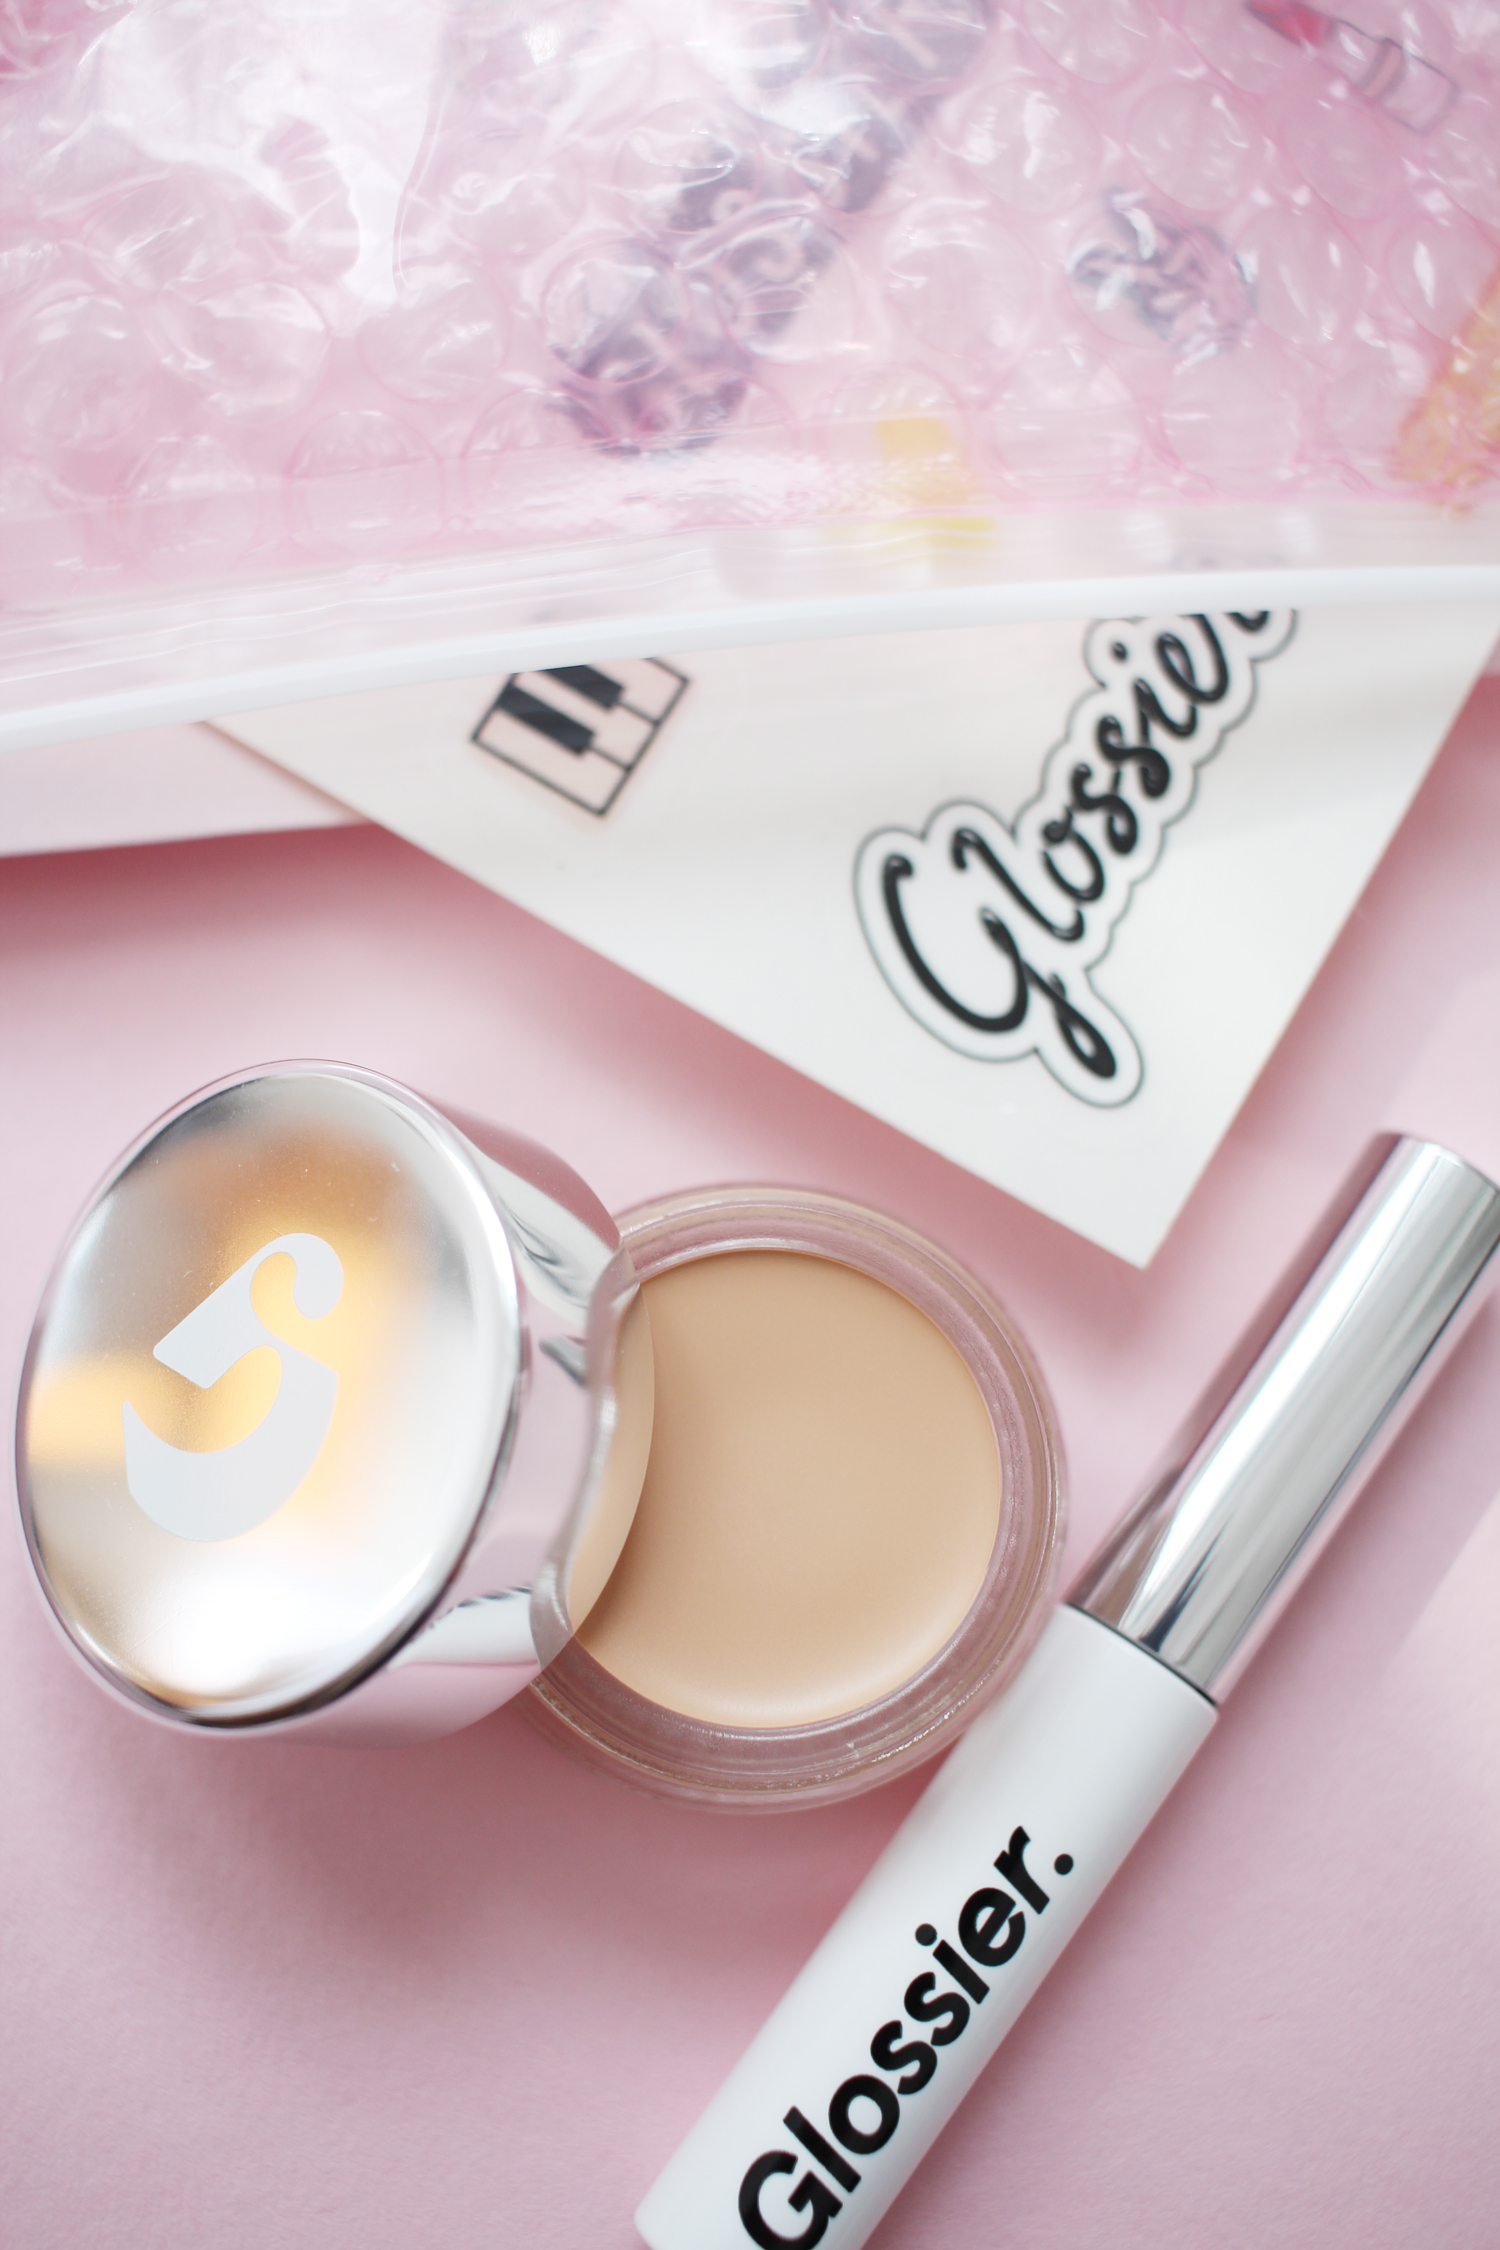 glossier-uk-haul-first-impressions-milk-jelly-cleanser-review-post-4